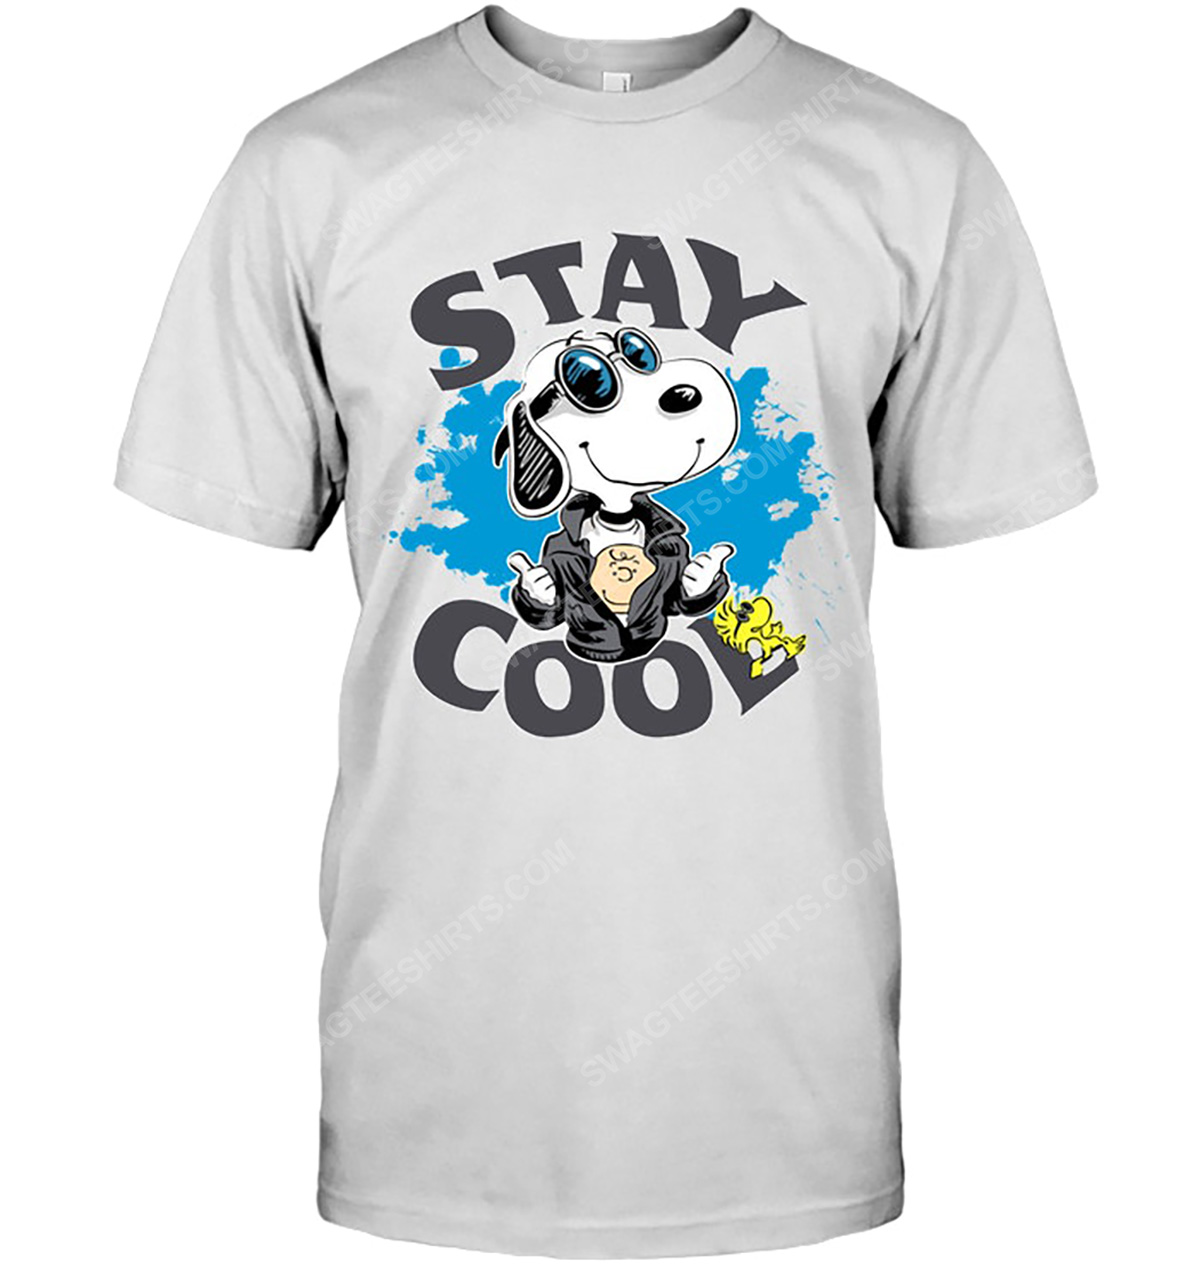 Charlie brown snoopy and woodstock stay cool tshirt(1)